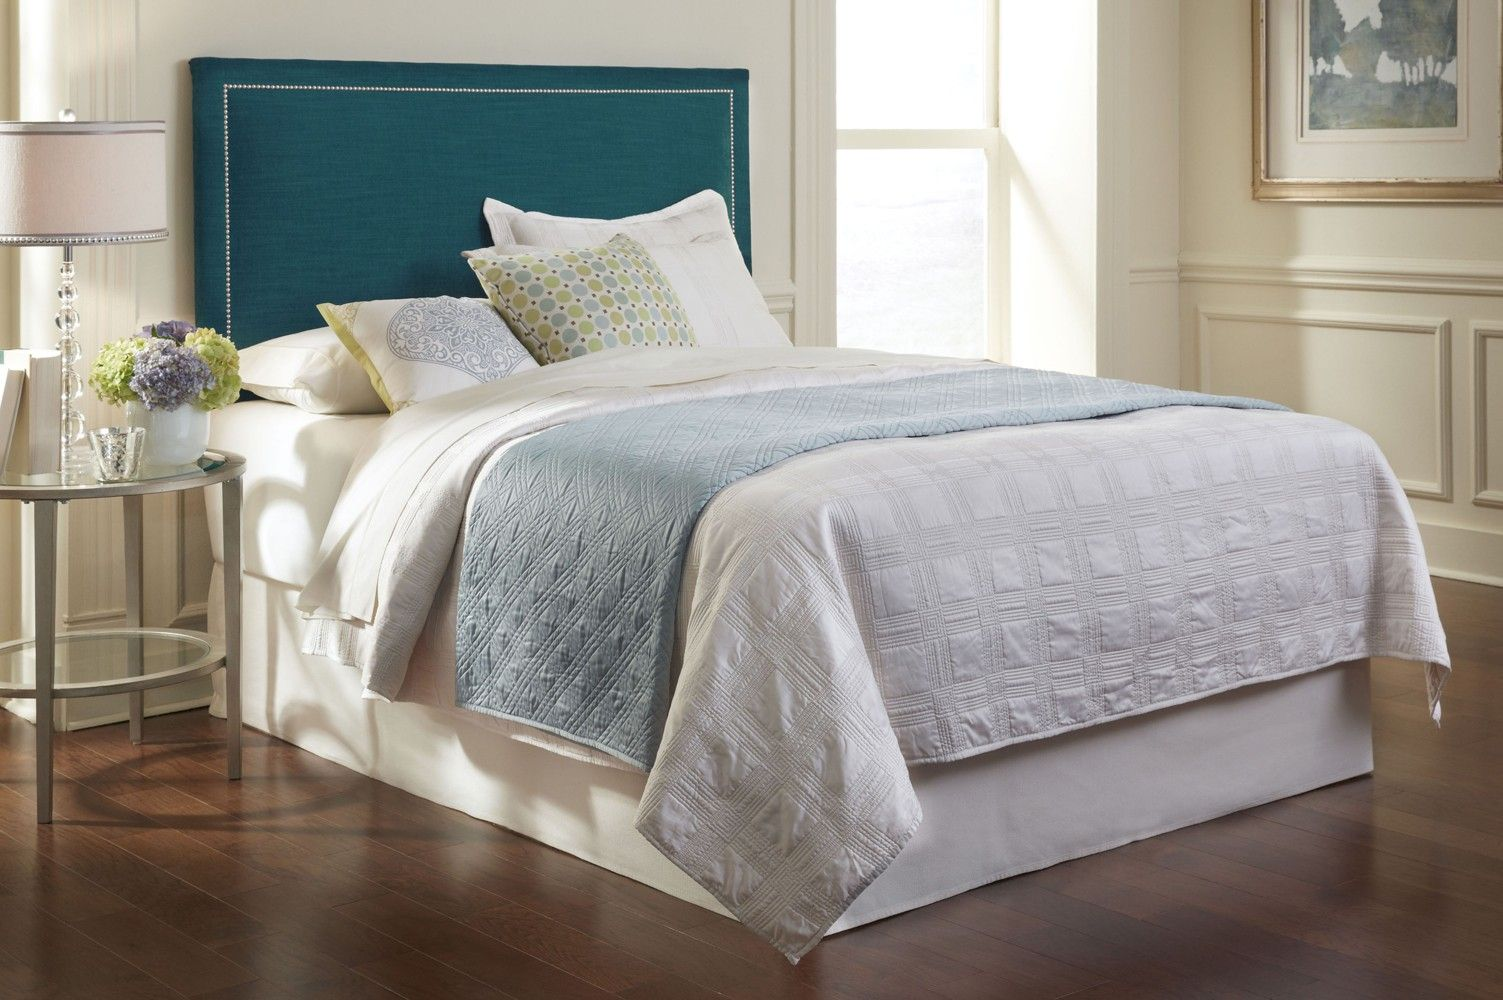 Clermont upholstered headboard in peacock by fashion bed